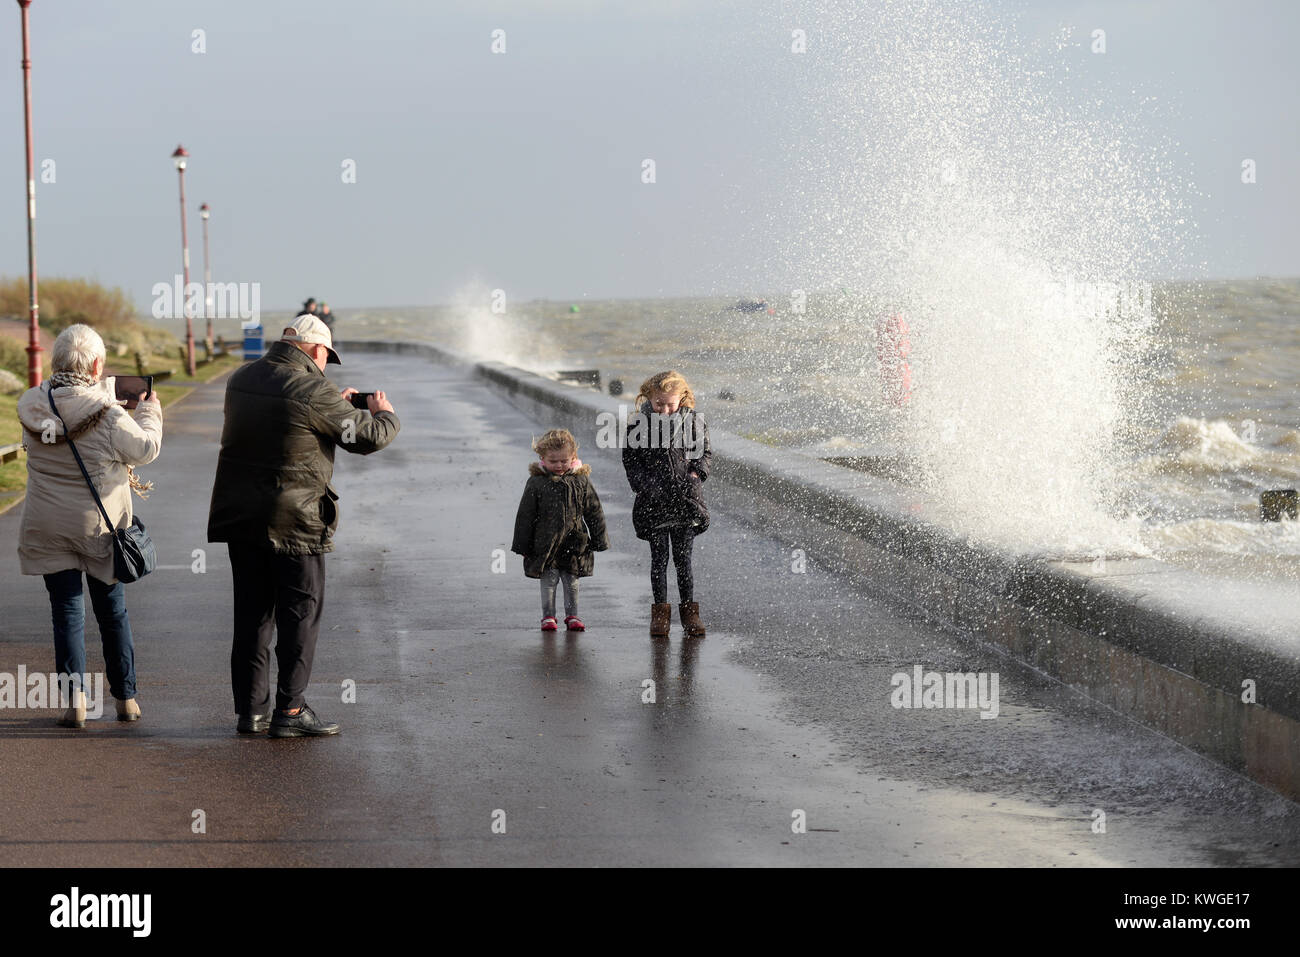 storm-eleanor-and-a-high-tide-pushed-the-thames-estuary-waves-over-KWGE17.jpg